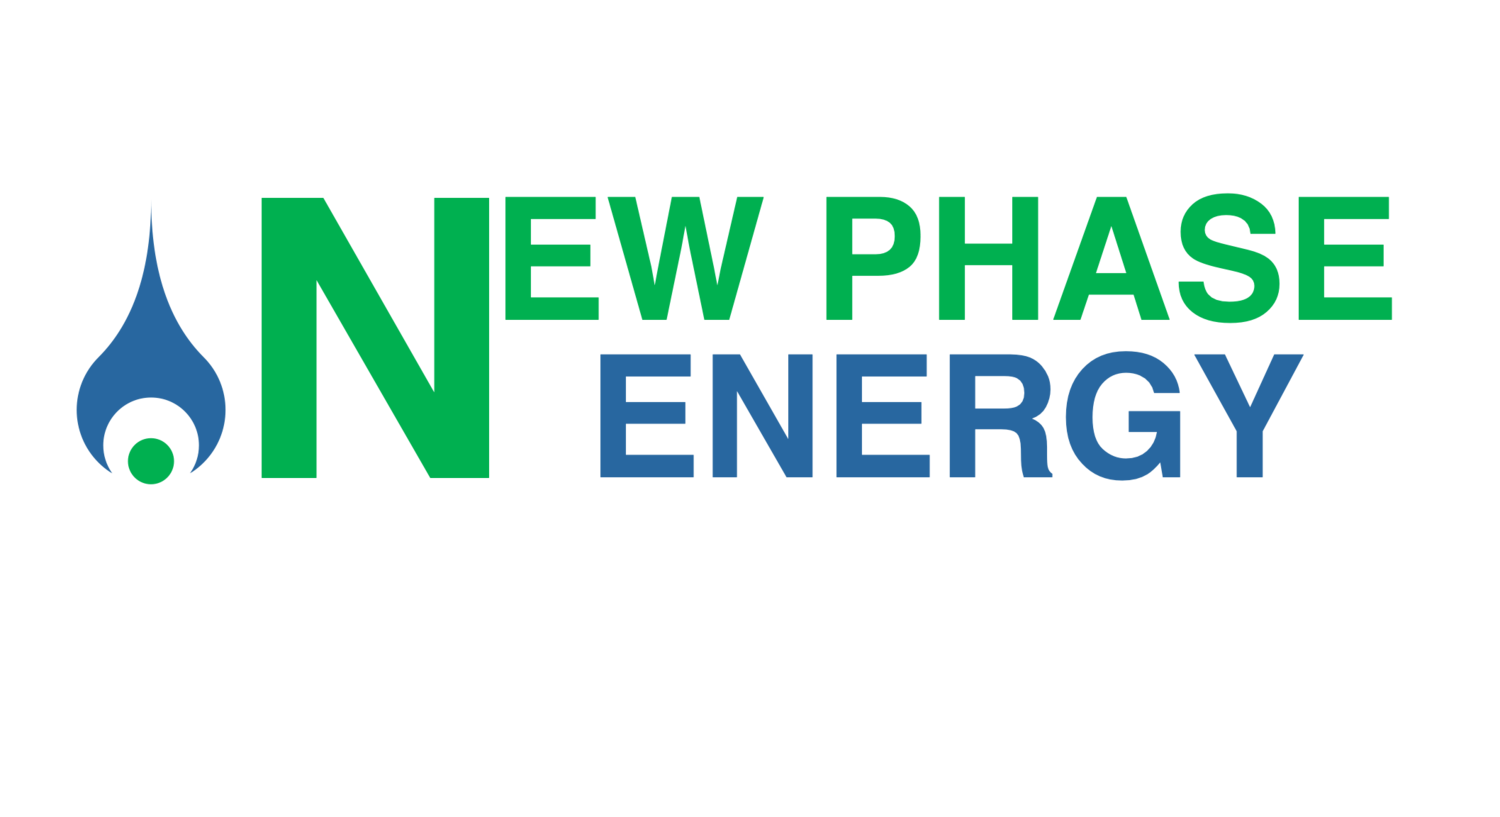 New Phase Energy